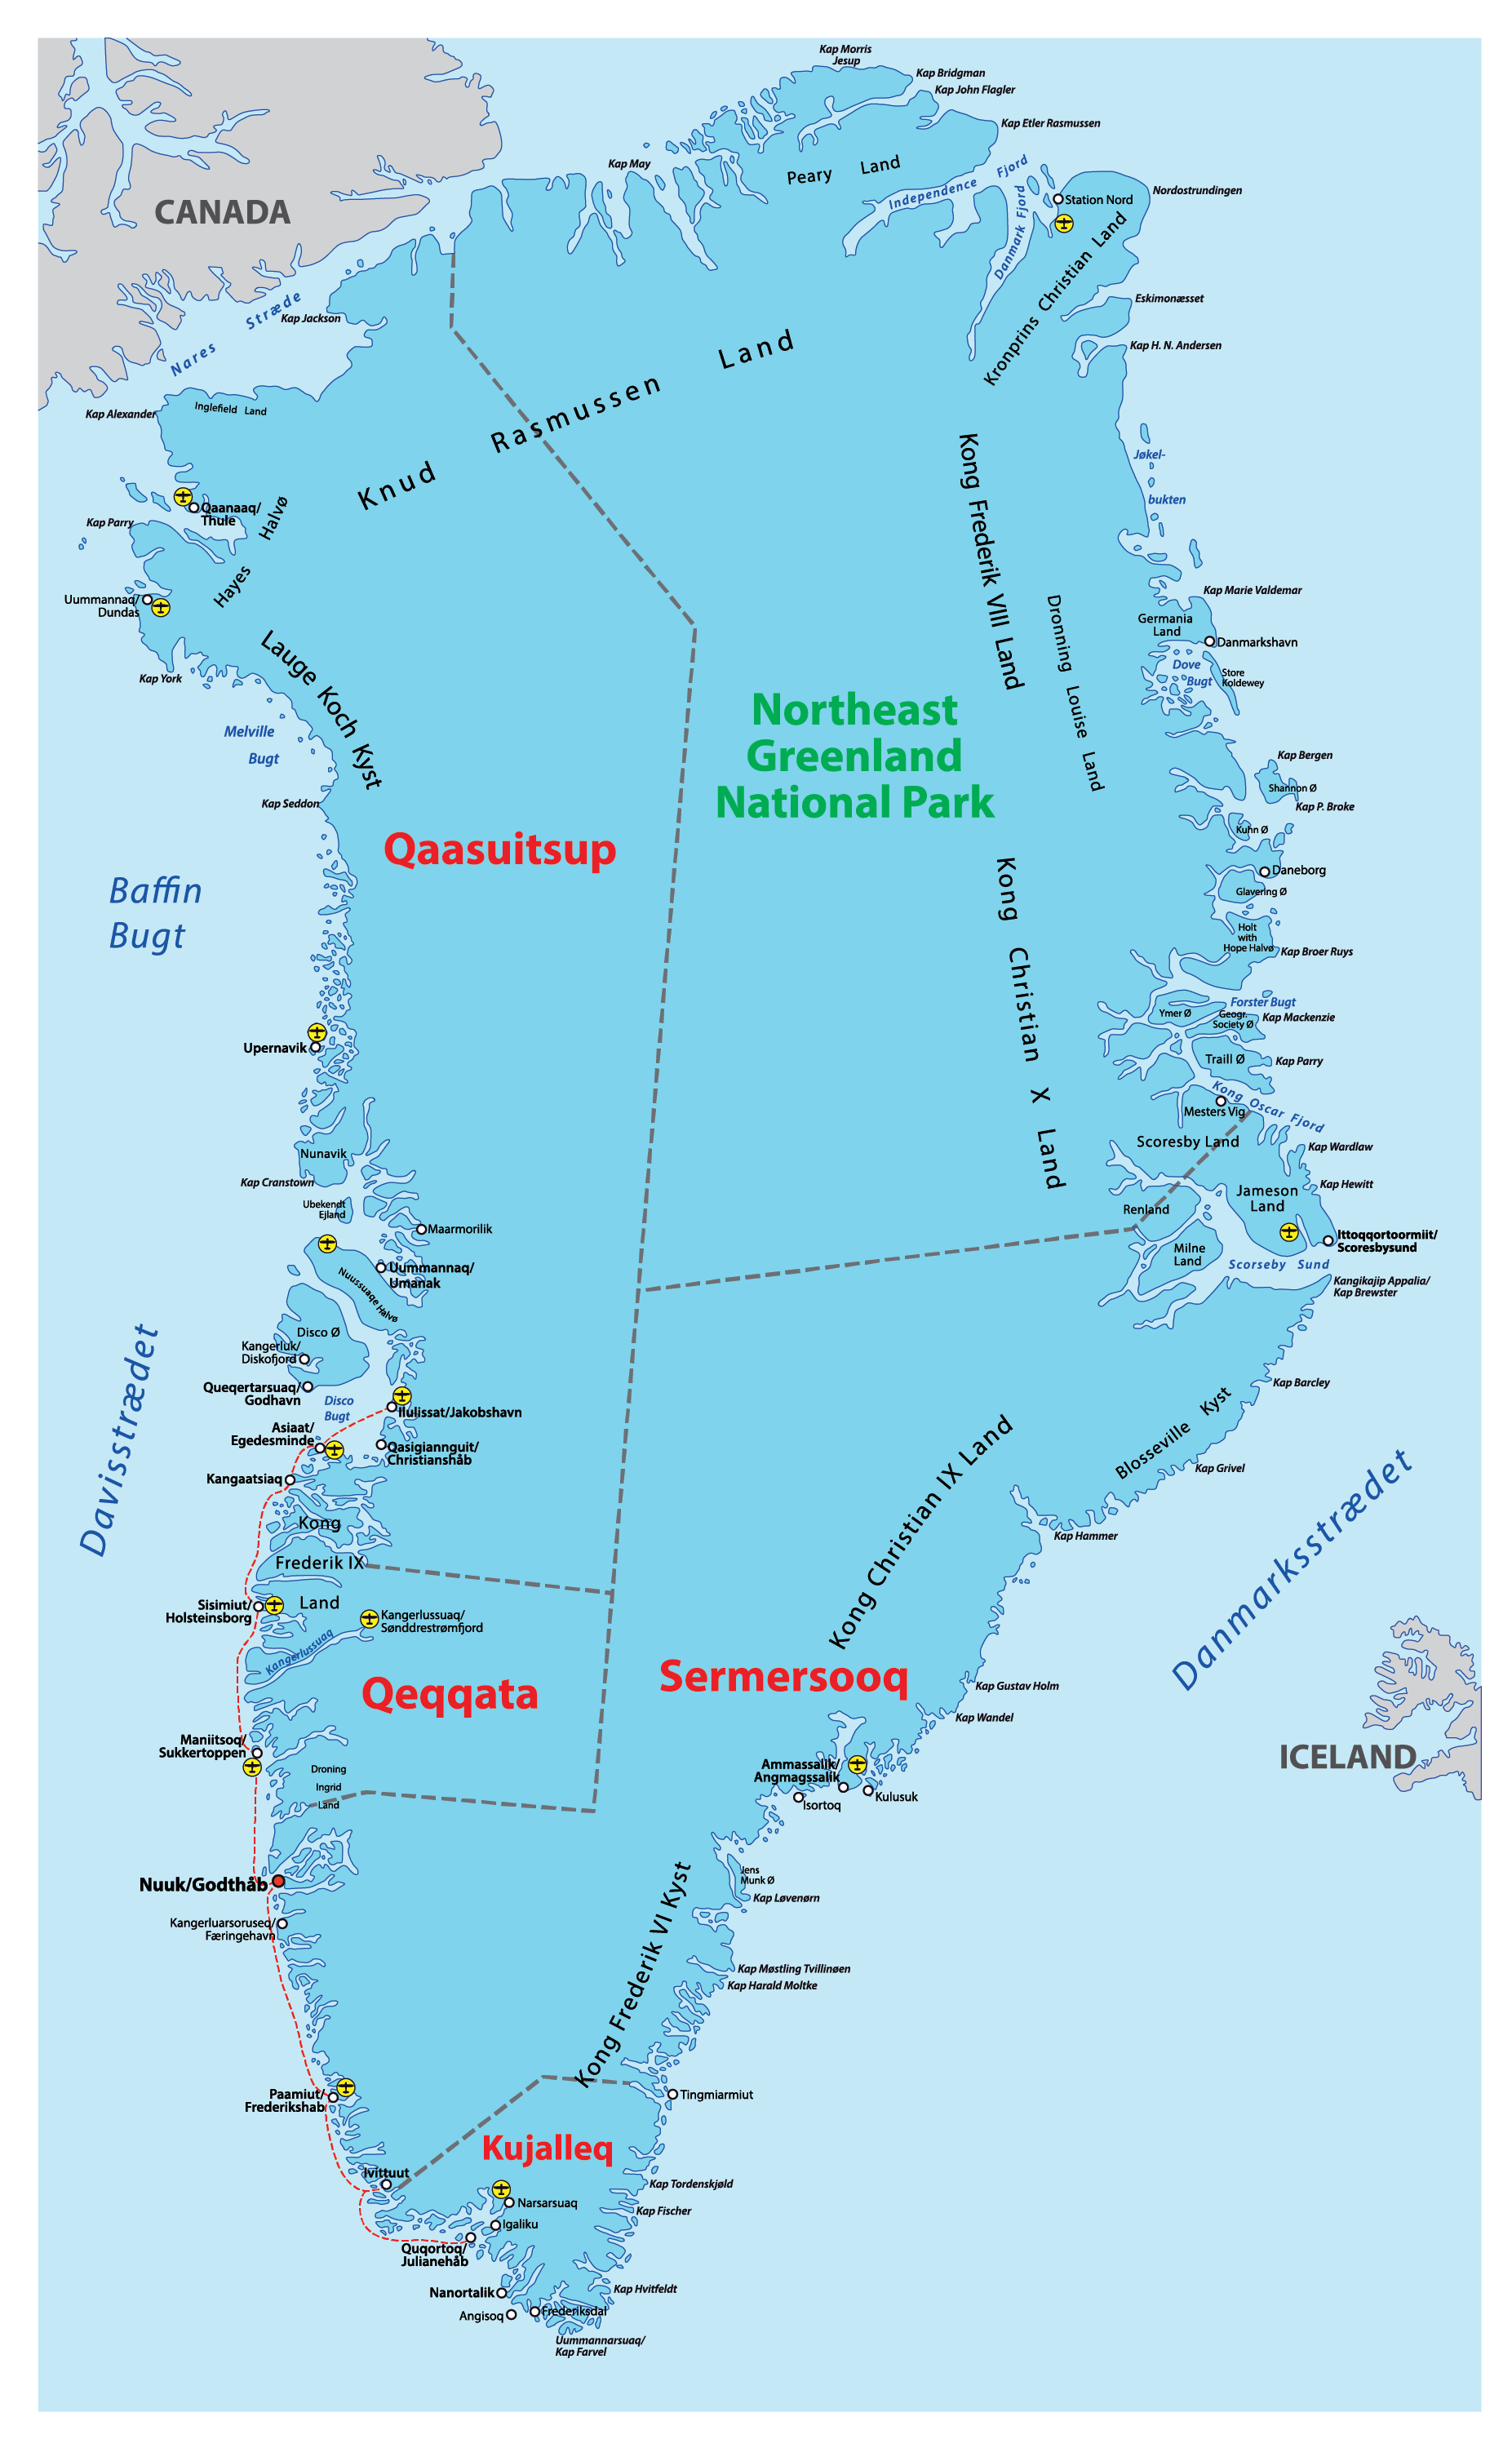 Political Map of Greenland showing its 5 municipalities and the capital city of Nuuk.